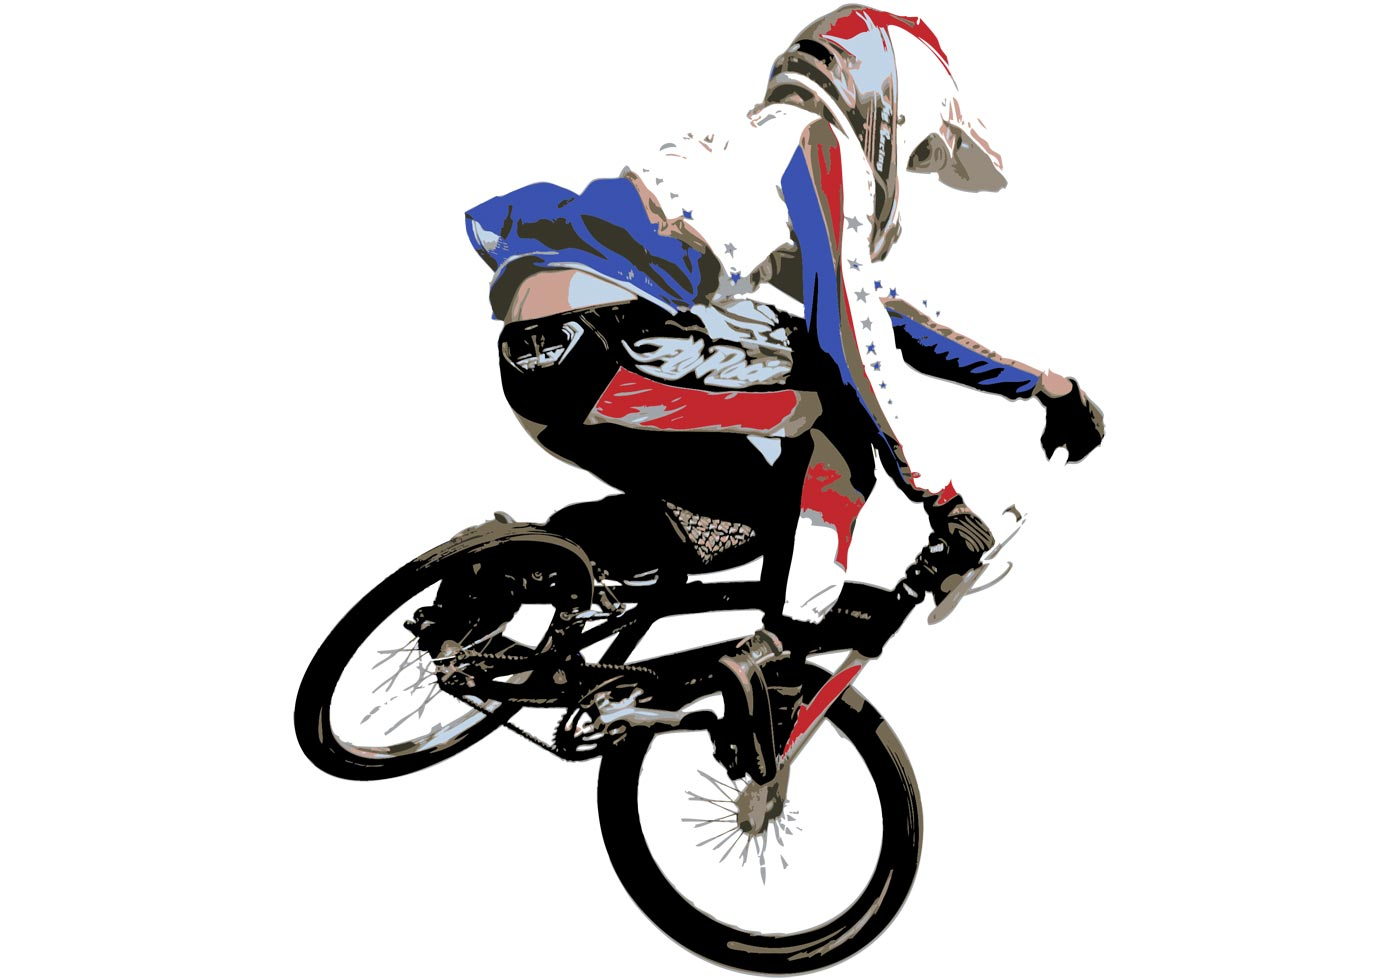 BMX Style Vector Artwork - Download Free Vector Art, Stock ...